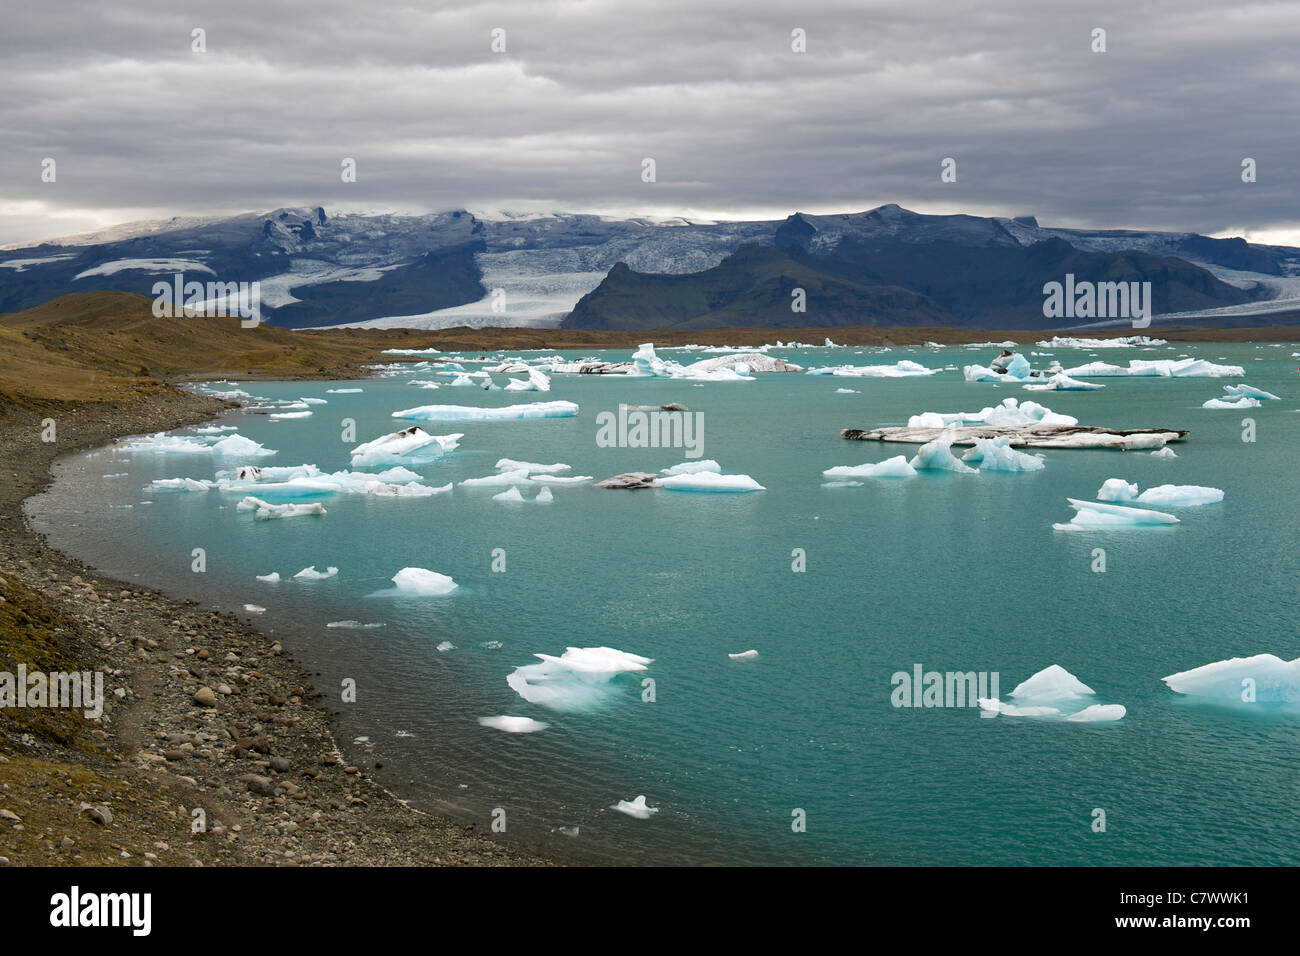 Icebergs floating in the Jokullsarlon lake at the foot of the massive Vatnajokull glacier in southeast Iceland. - Stock Image